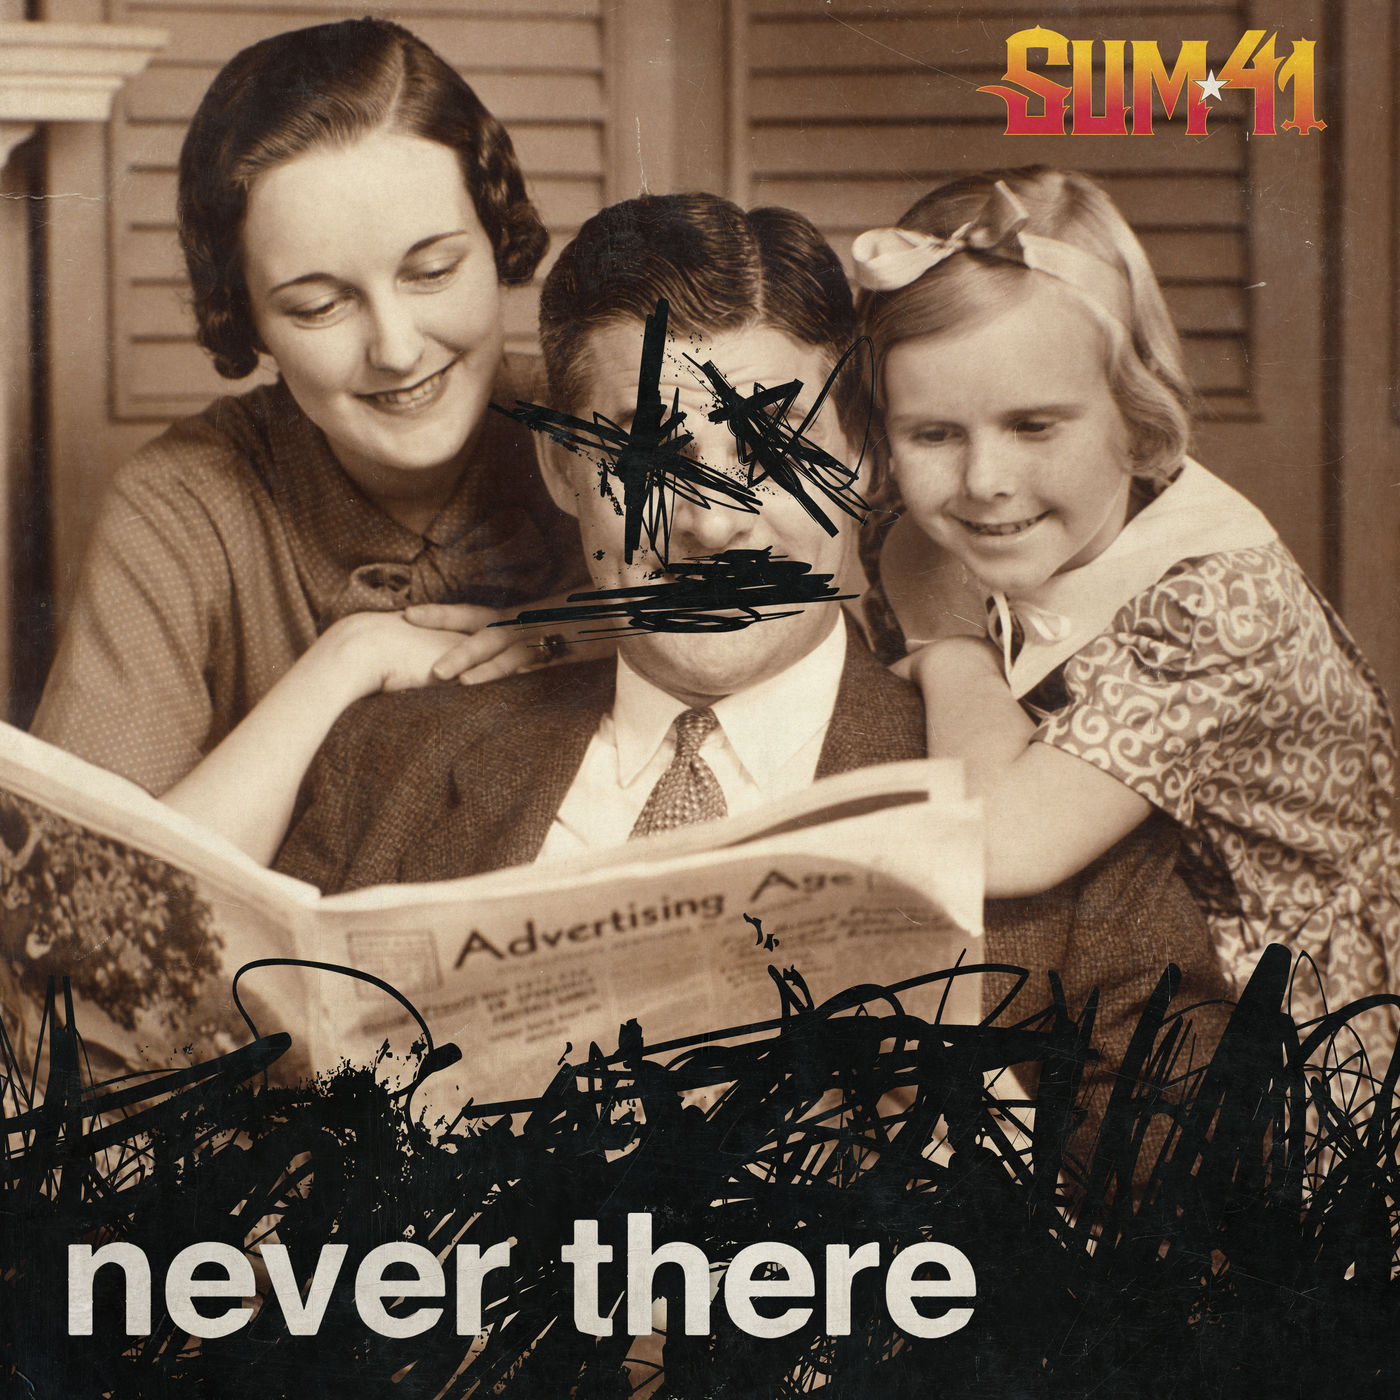 Sum 41 - Never There [single] (2019)